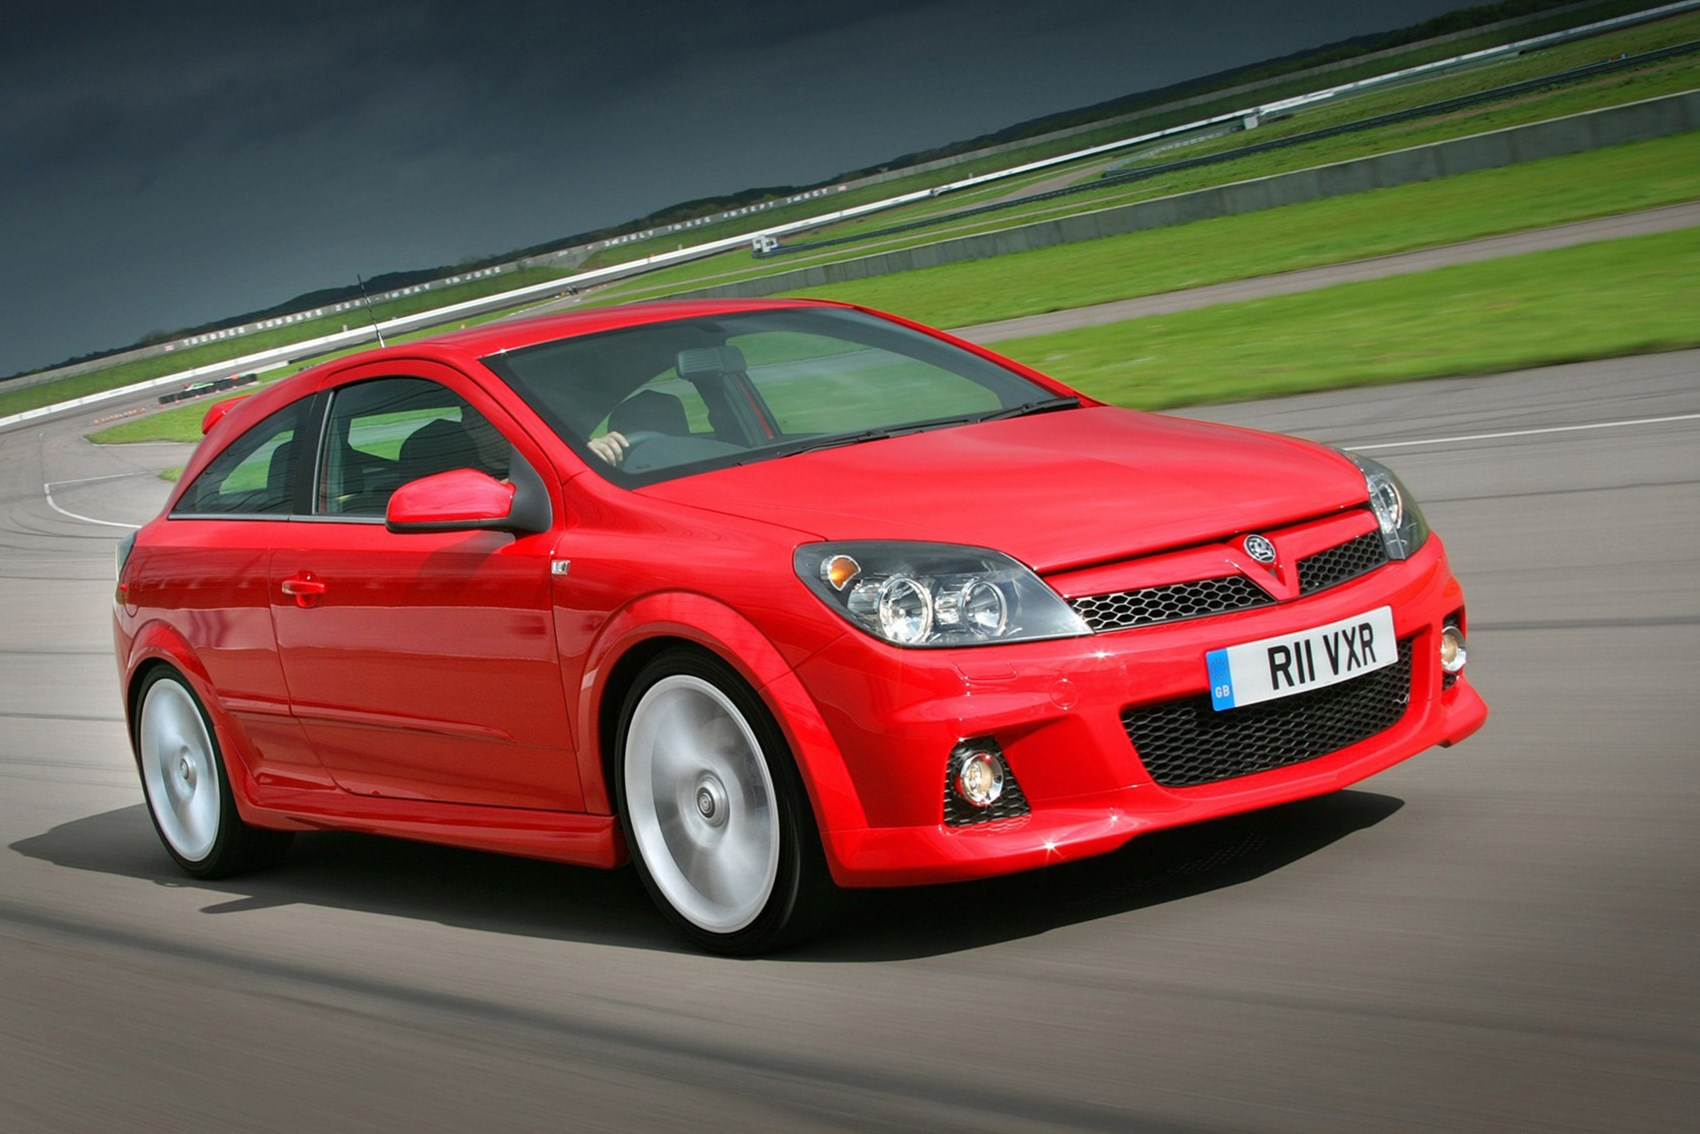 Vauxhall Astra VXR - used hatchbacks for less than £4k